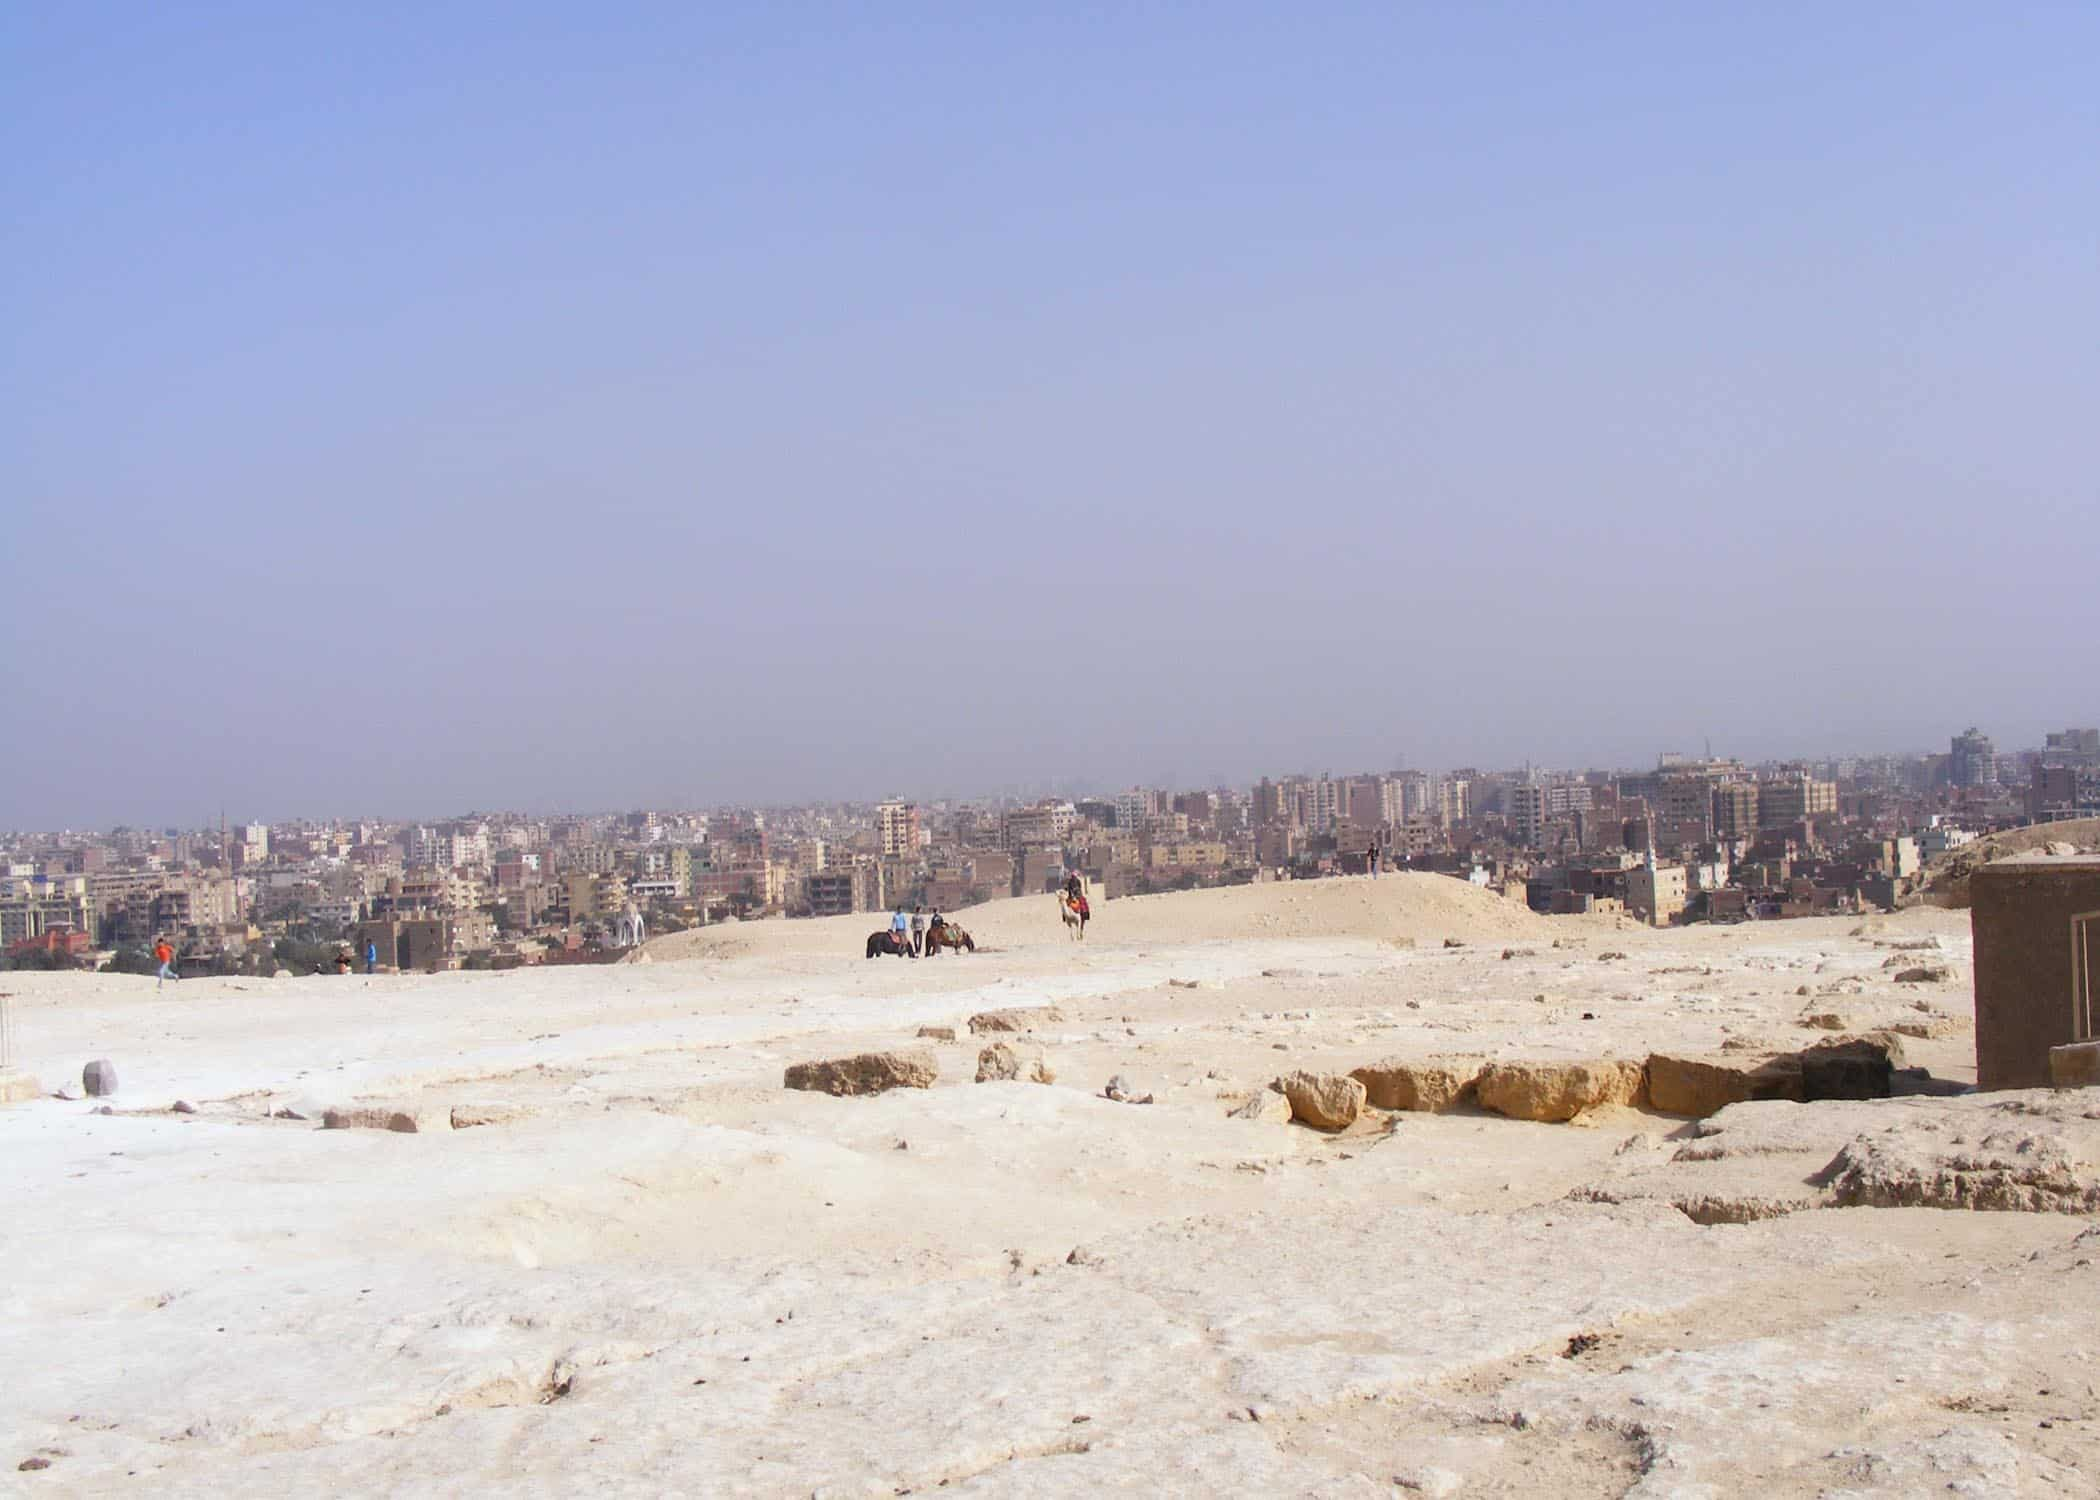 a view of Cairo from the pyramids of Giza